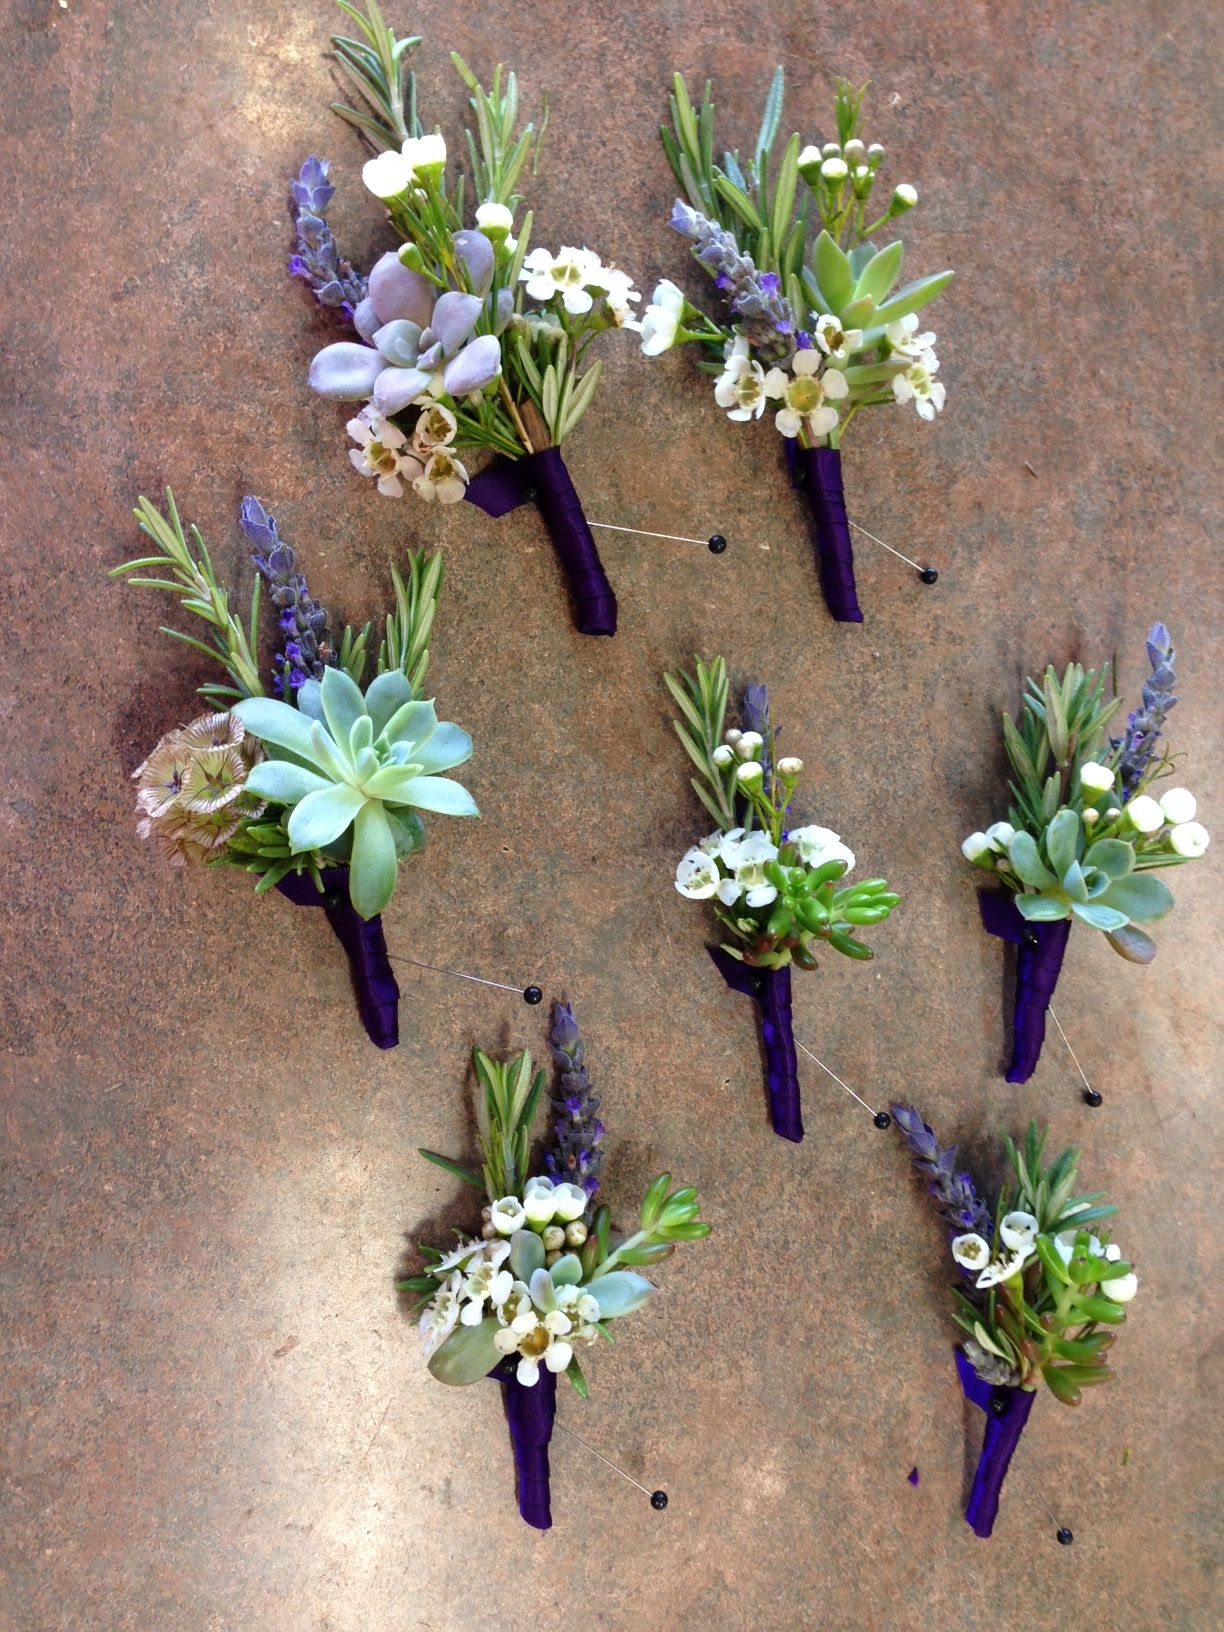 Succulent Boutonnieres With Lavender Rosemary And White Wax Flower